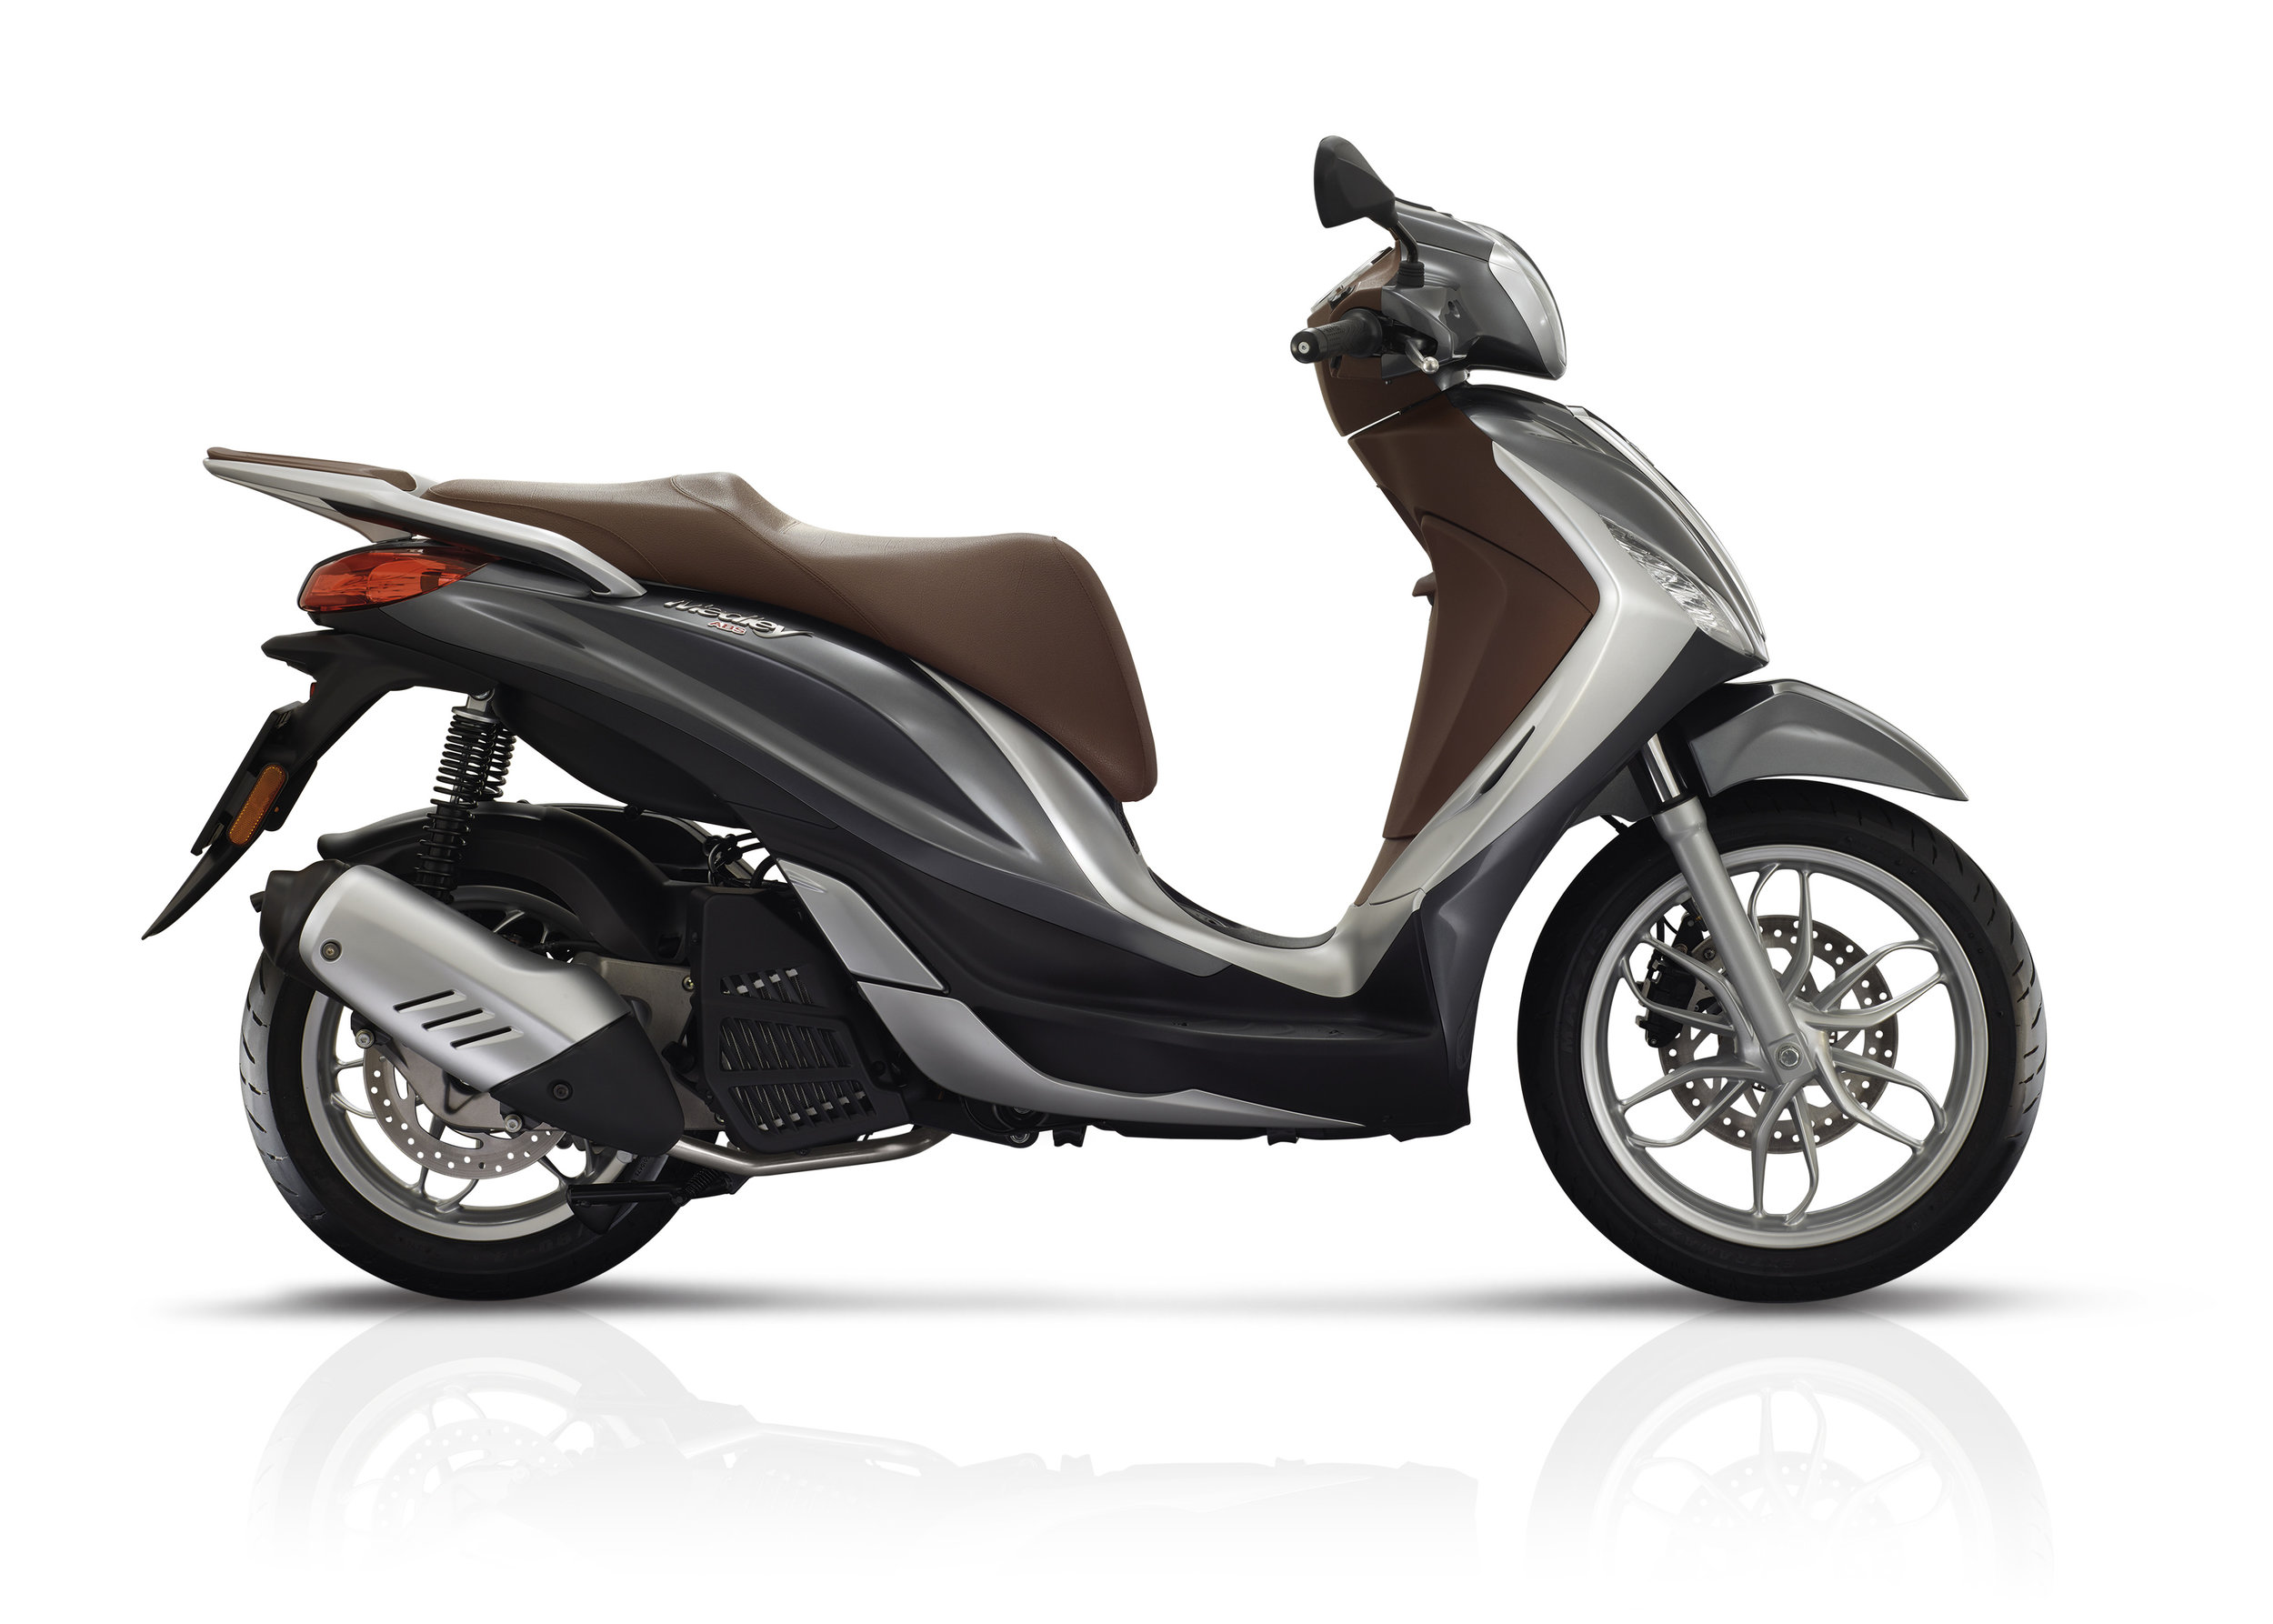 Piaggio Medley 125 equipped lateral dx 16.jpg